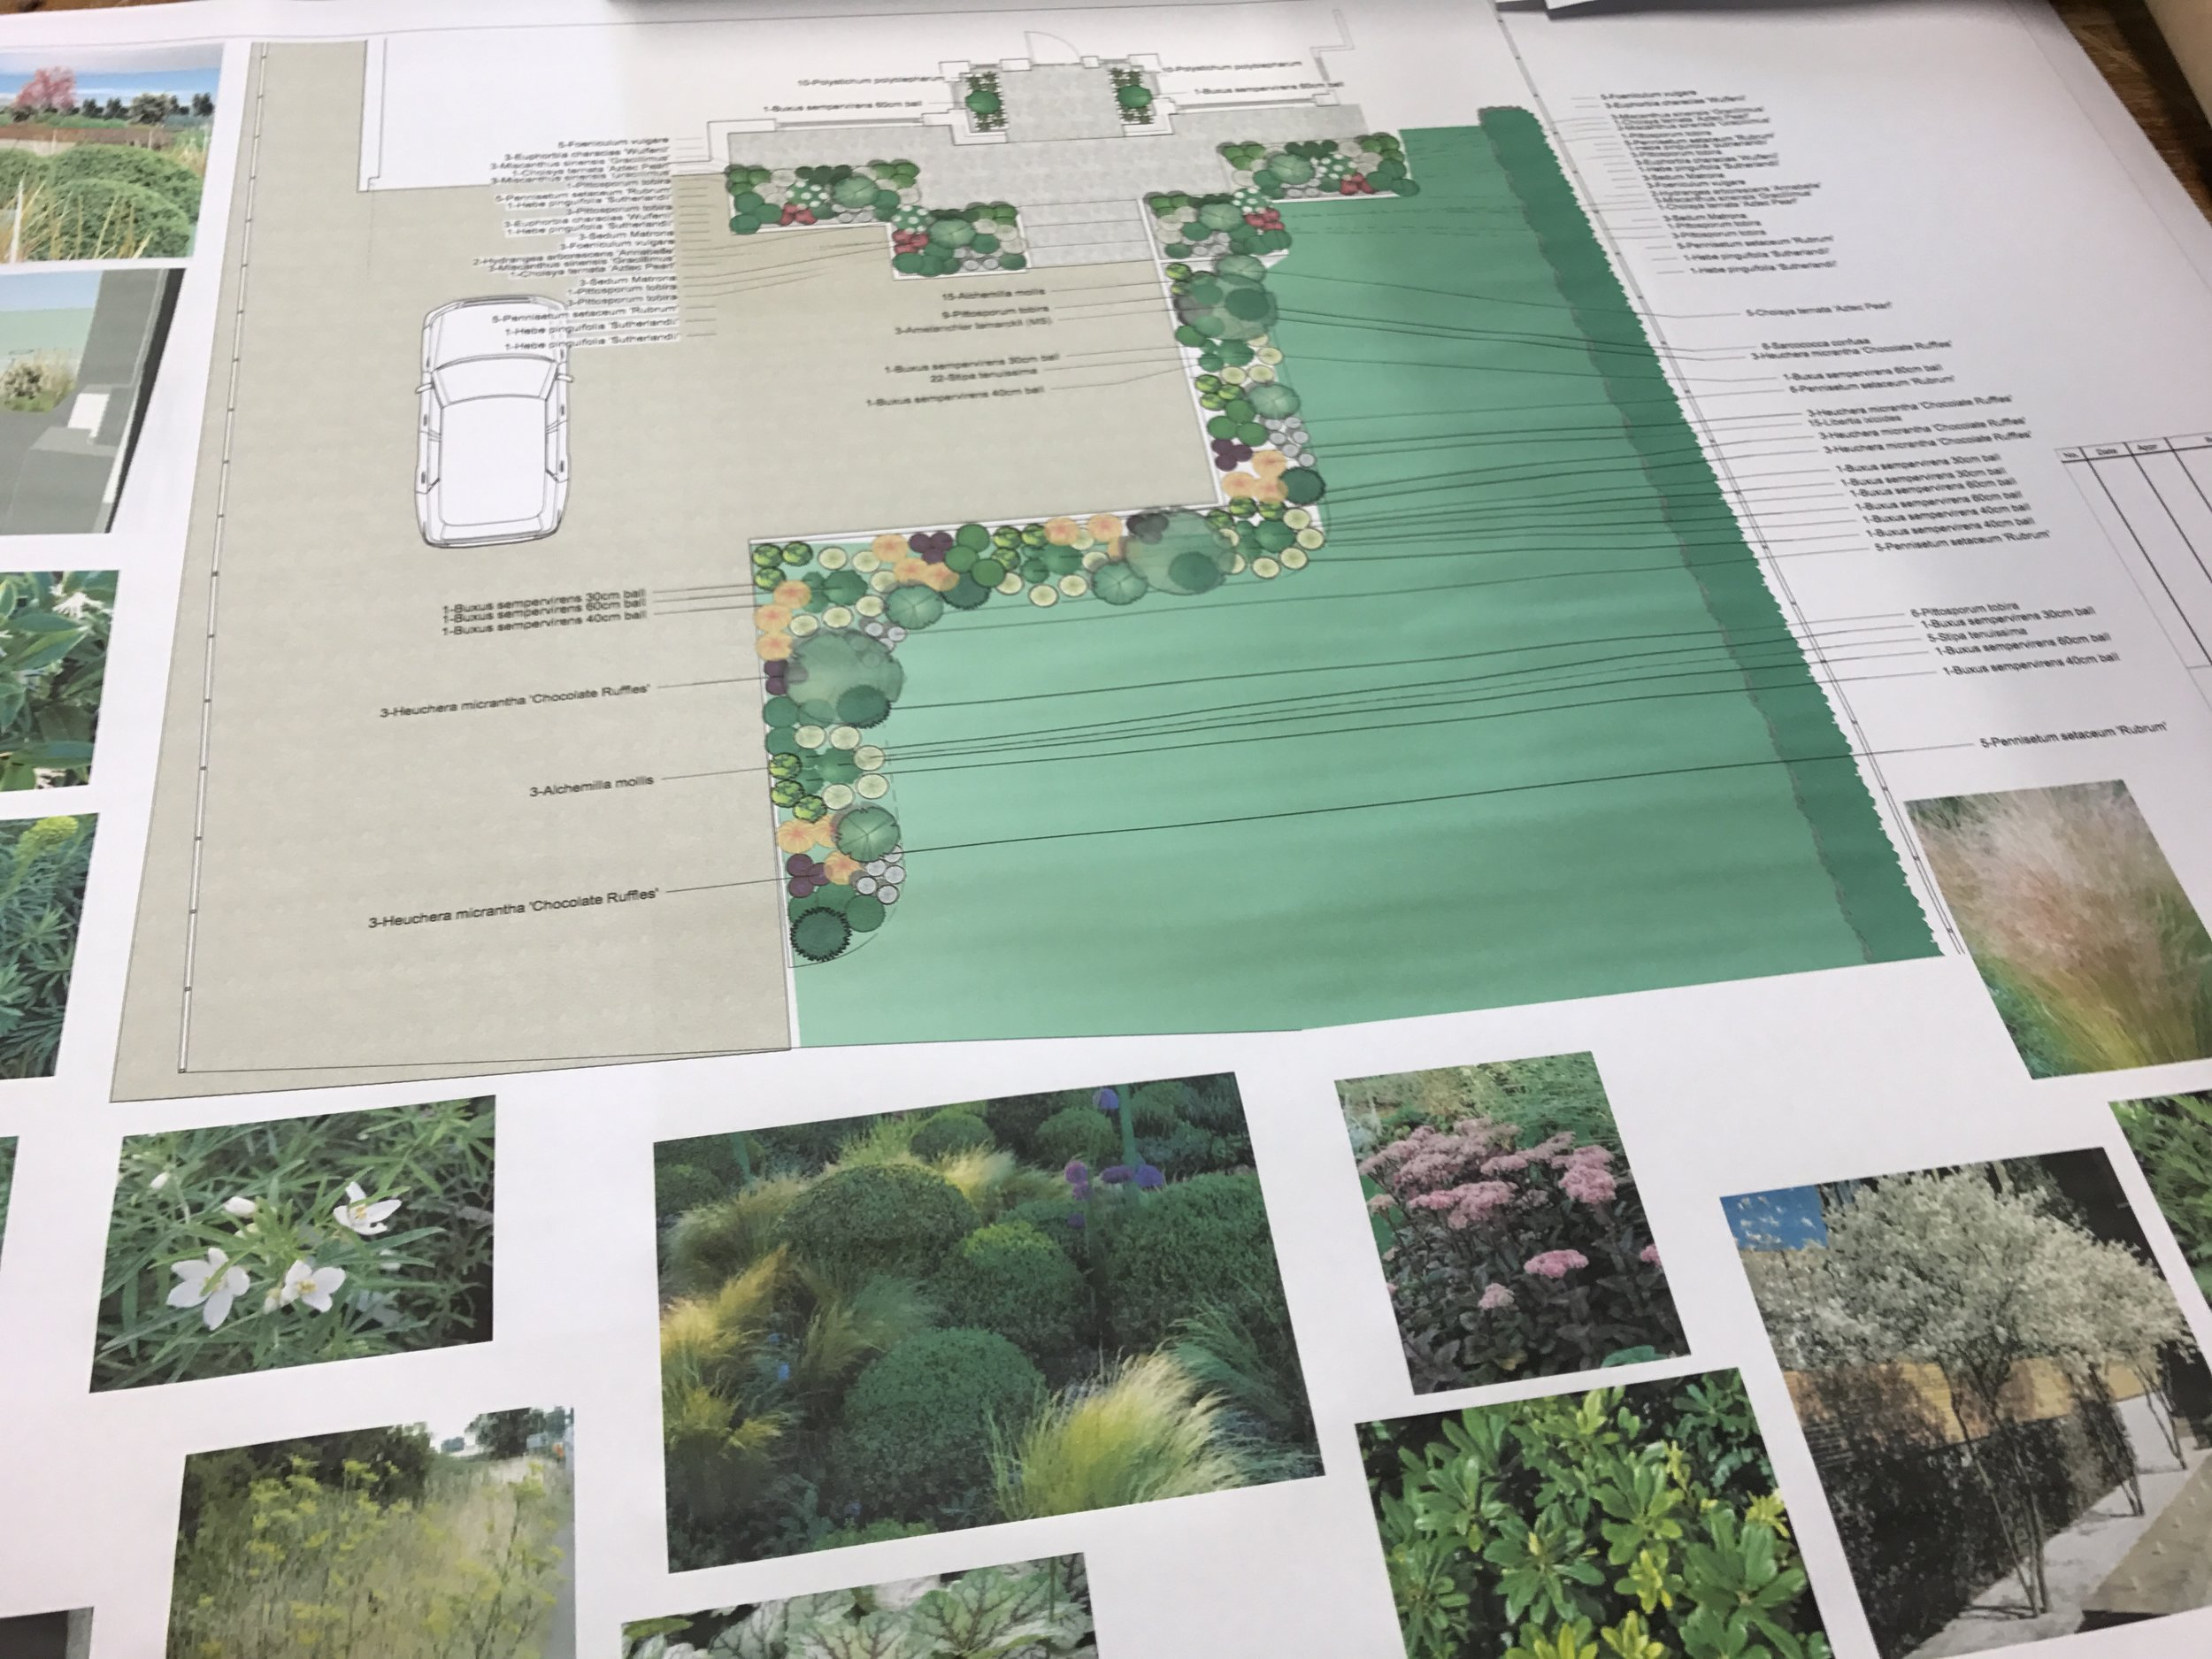 Planting plan and mood board on CAD